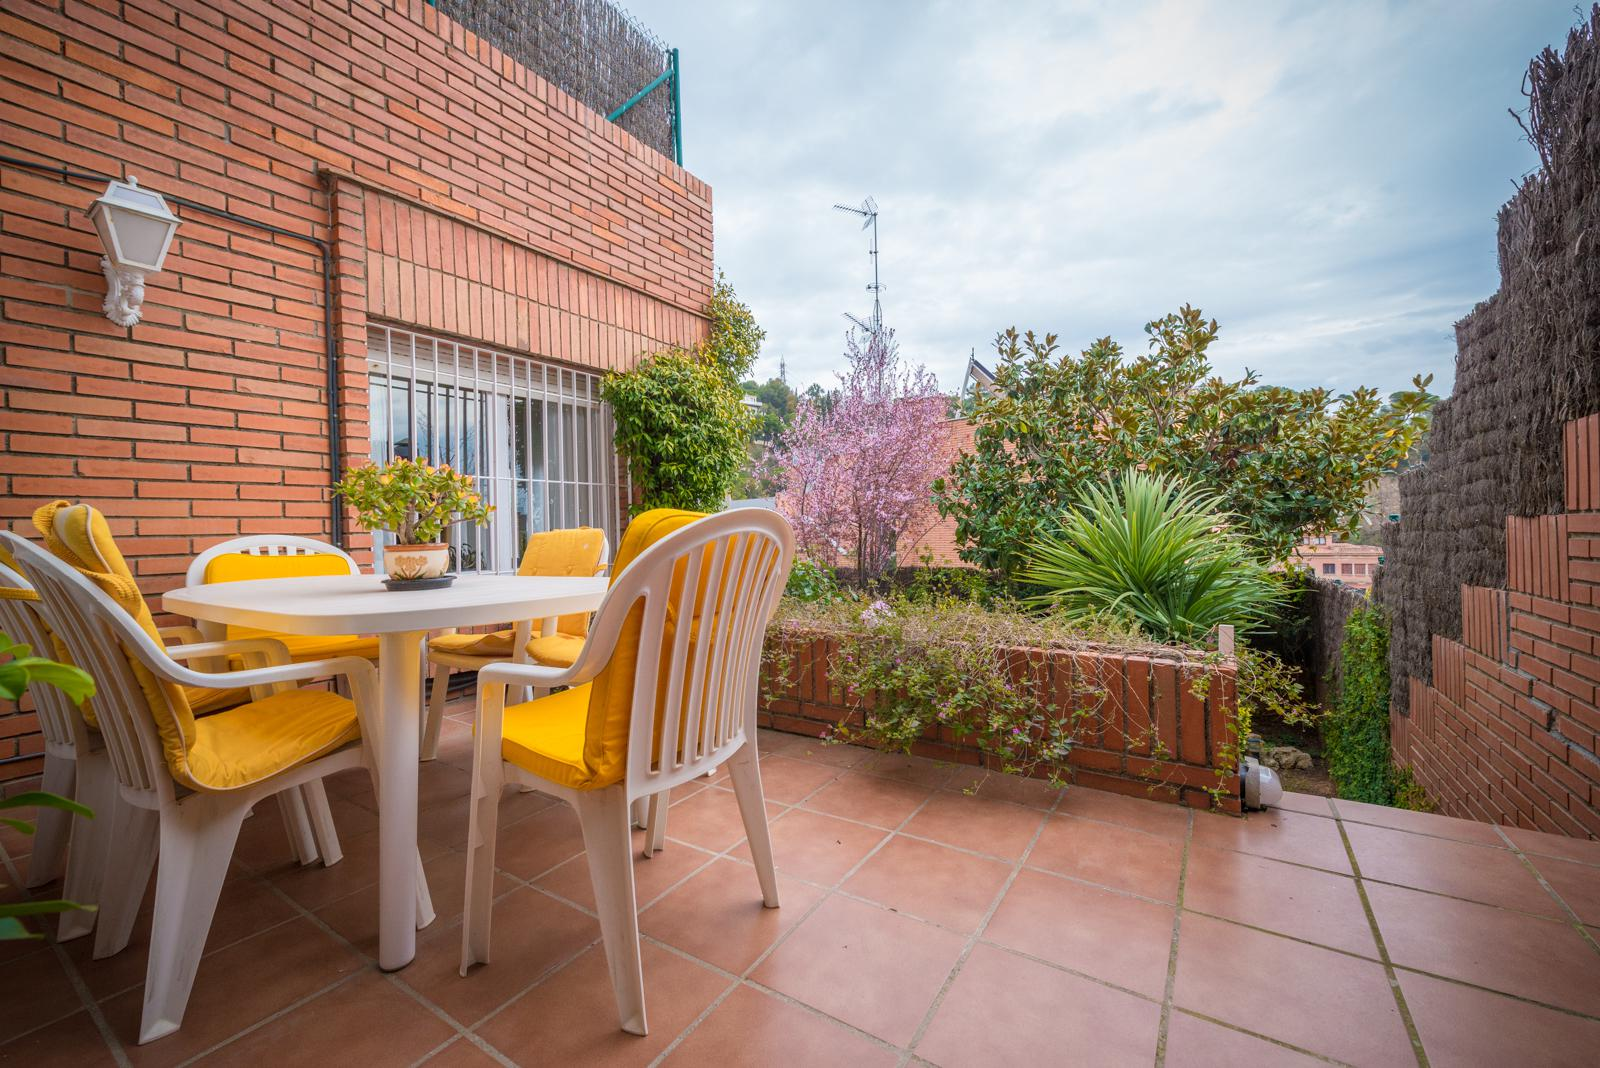 74341 Townhouse for sale in Gràcia, Vallcarca i els Penitents 8